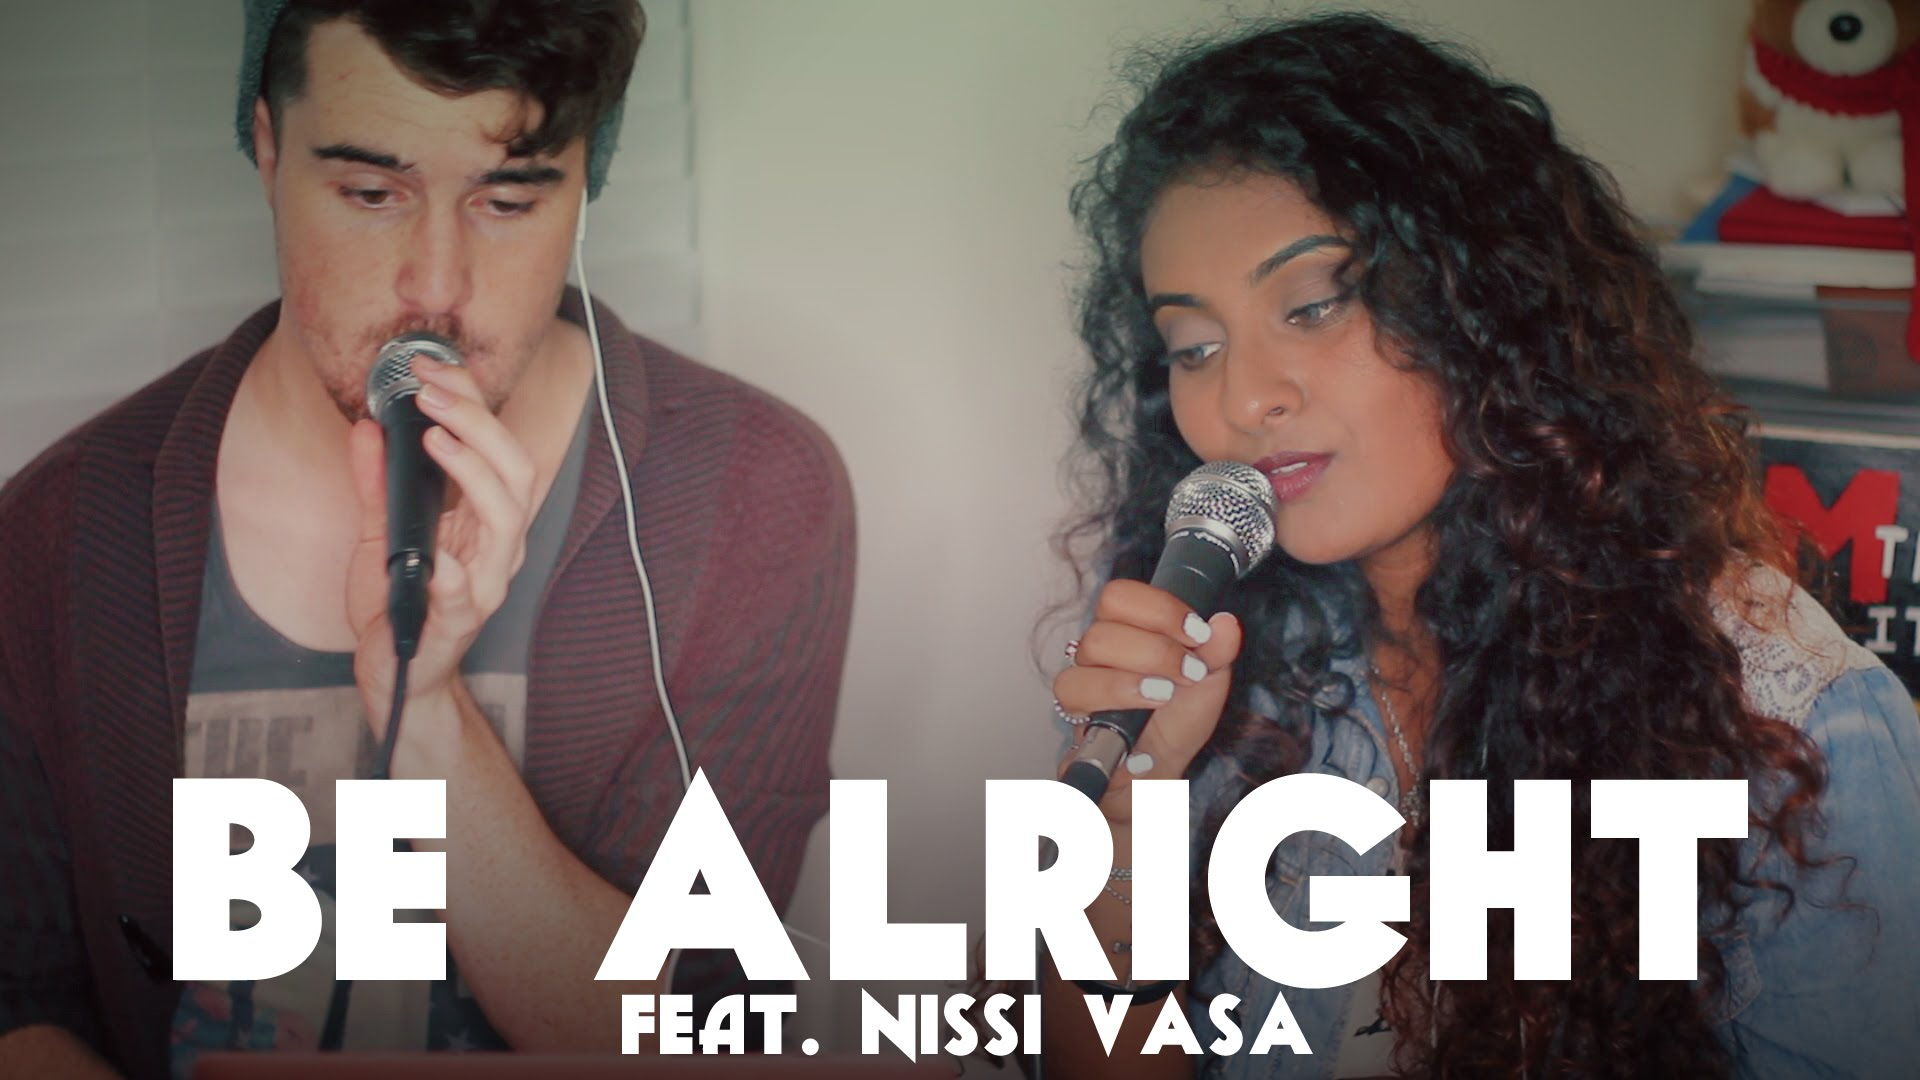 Be Alright feat. Nissi Vasa